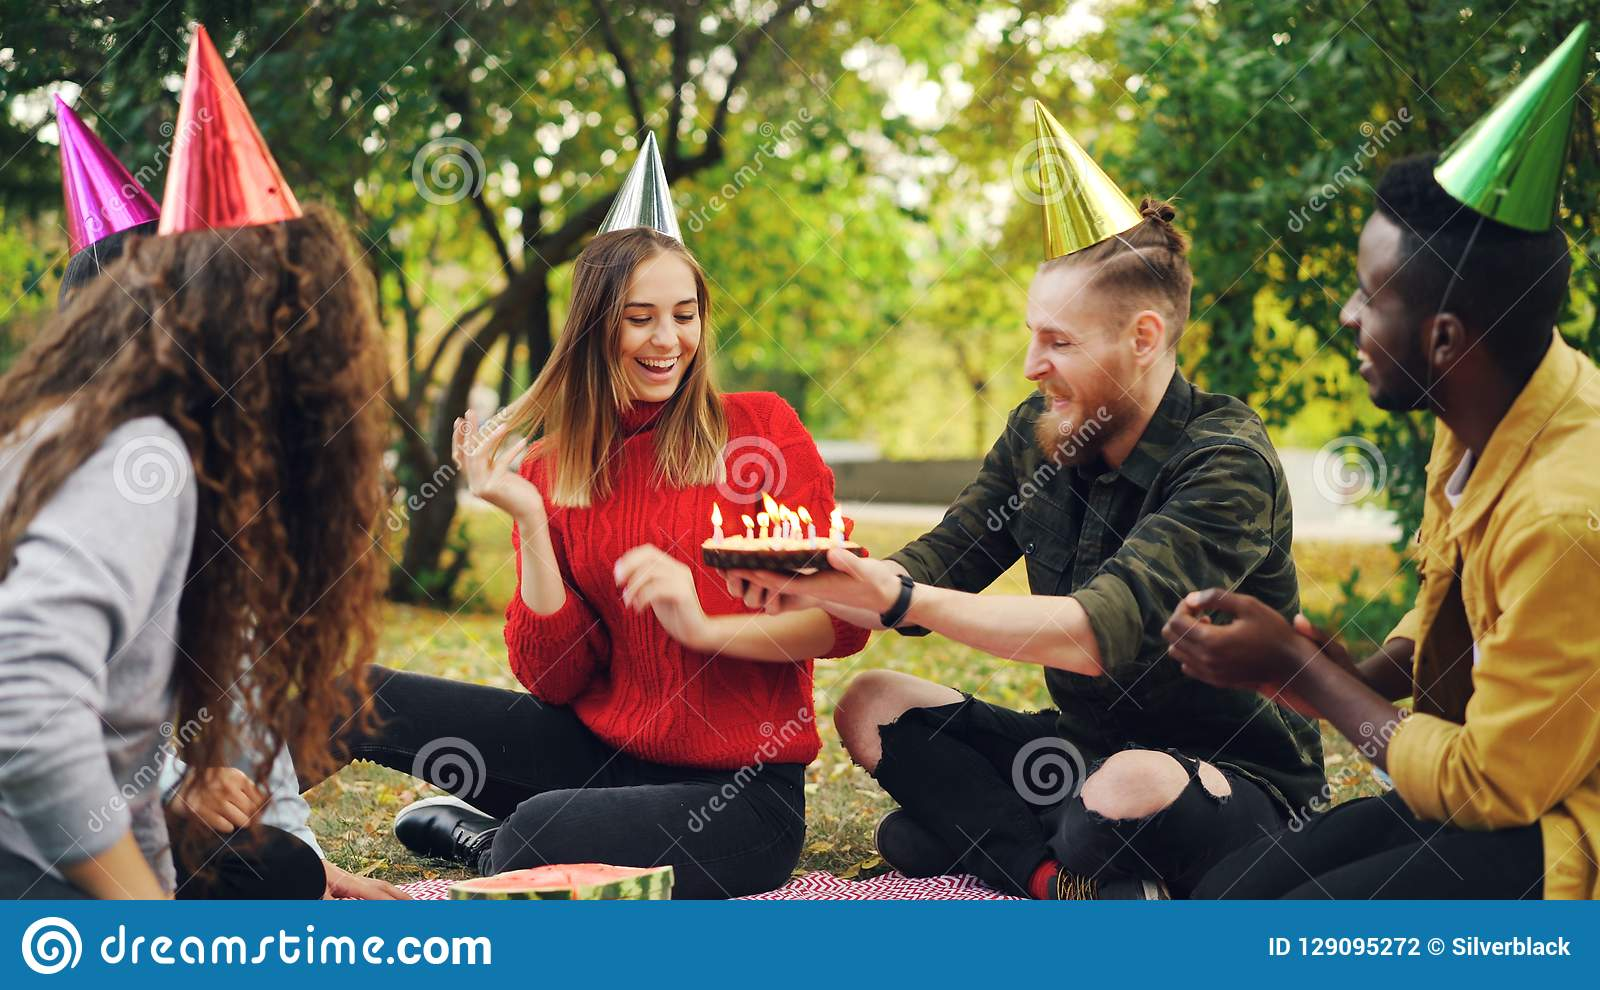 Beautiful girl in party hat is celebrating birthday with friends in park on picnic making wish, blowing candles on cake